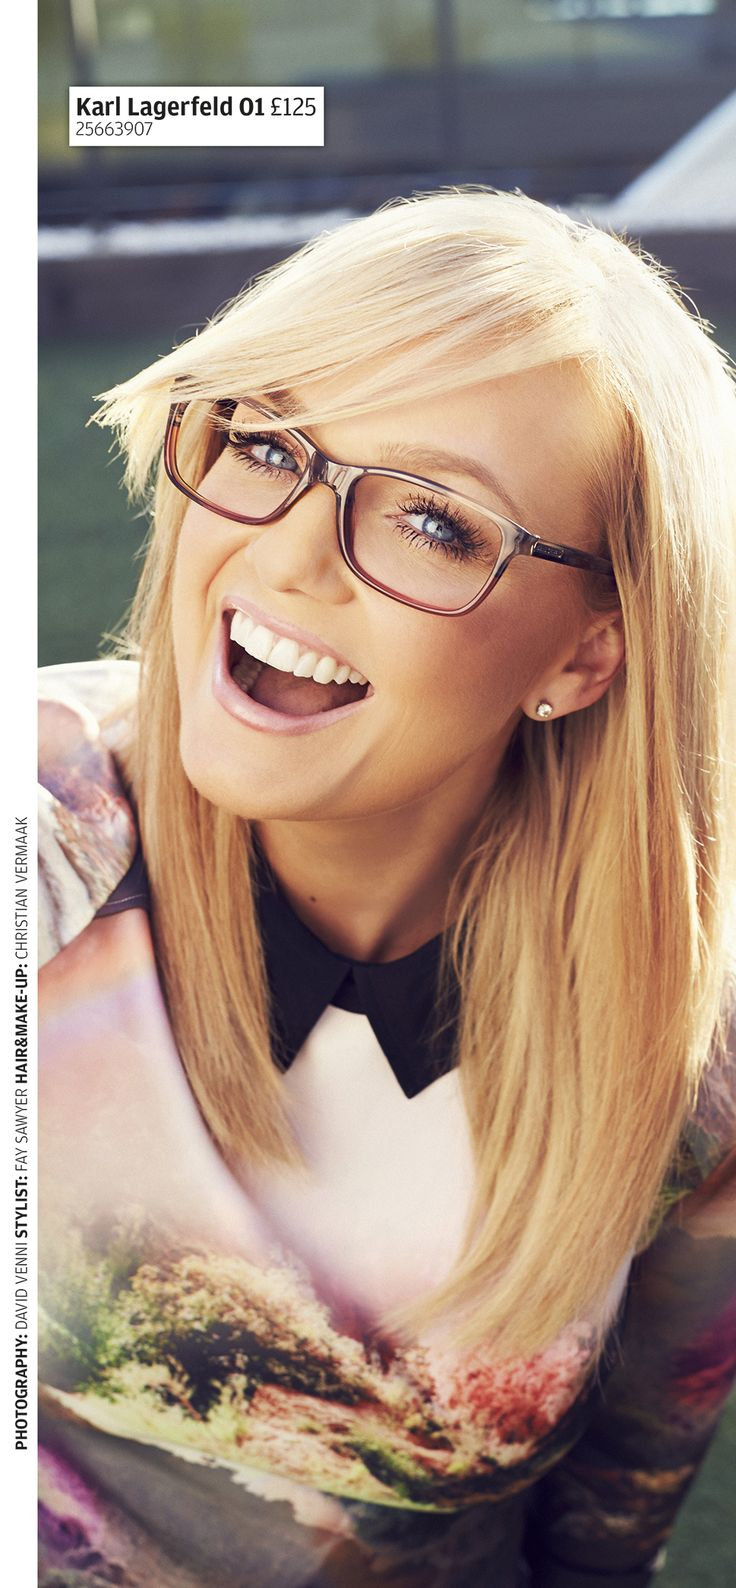 Emma Bunton (Baby Spice) in Karl Lagerfeld 01 by Specsavers.